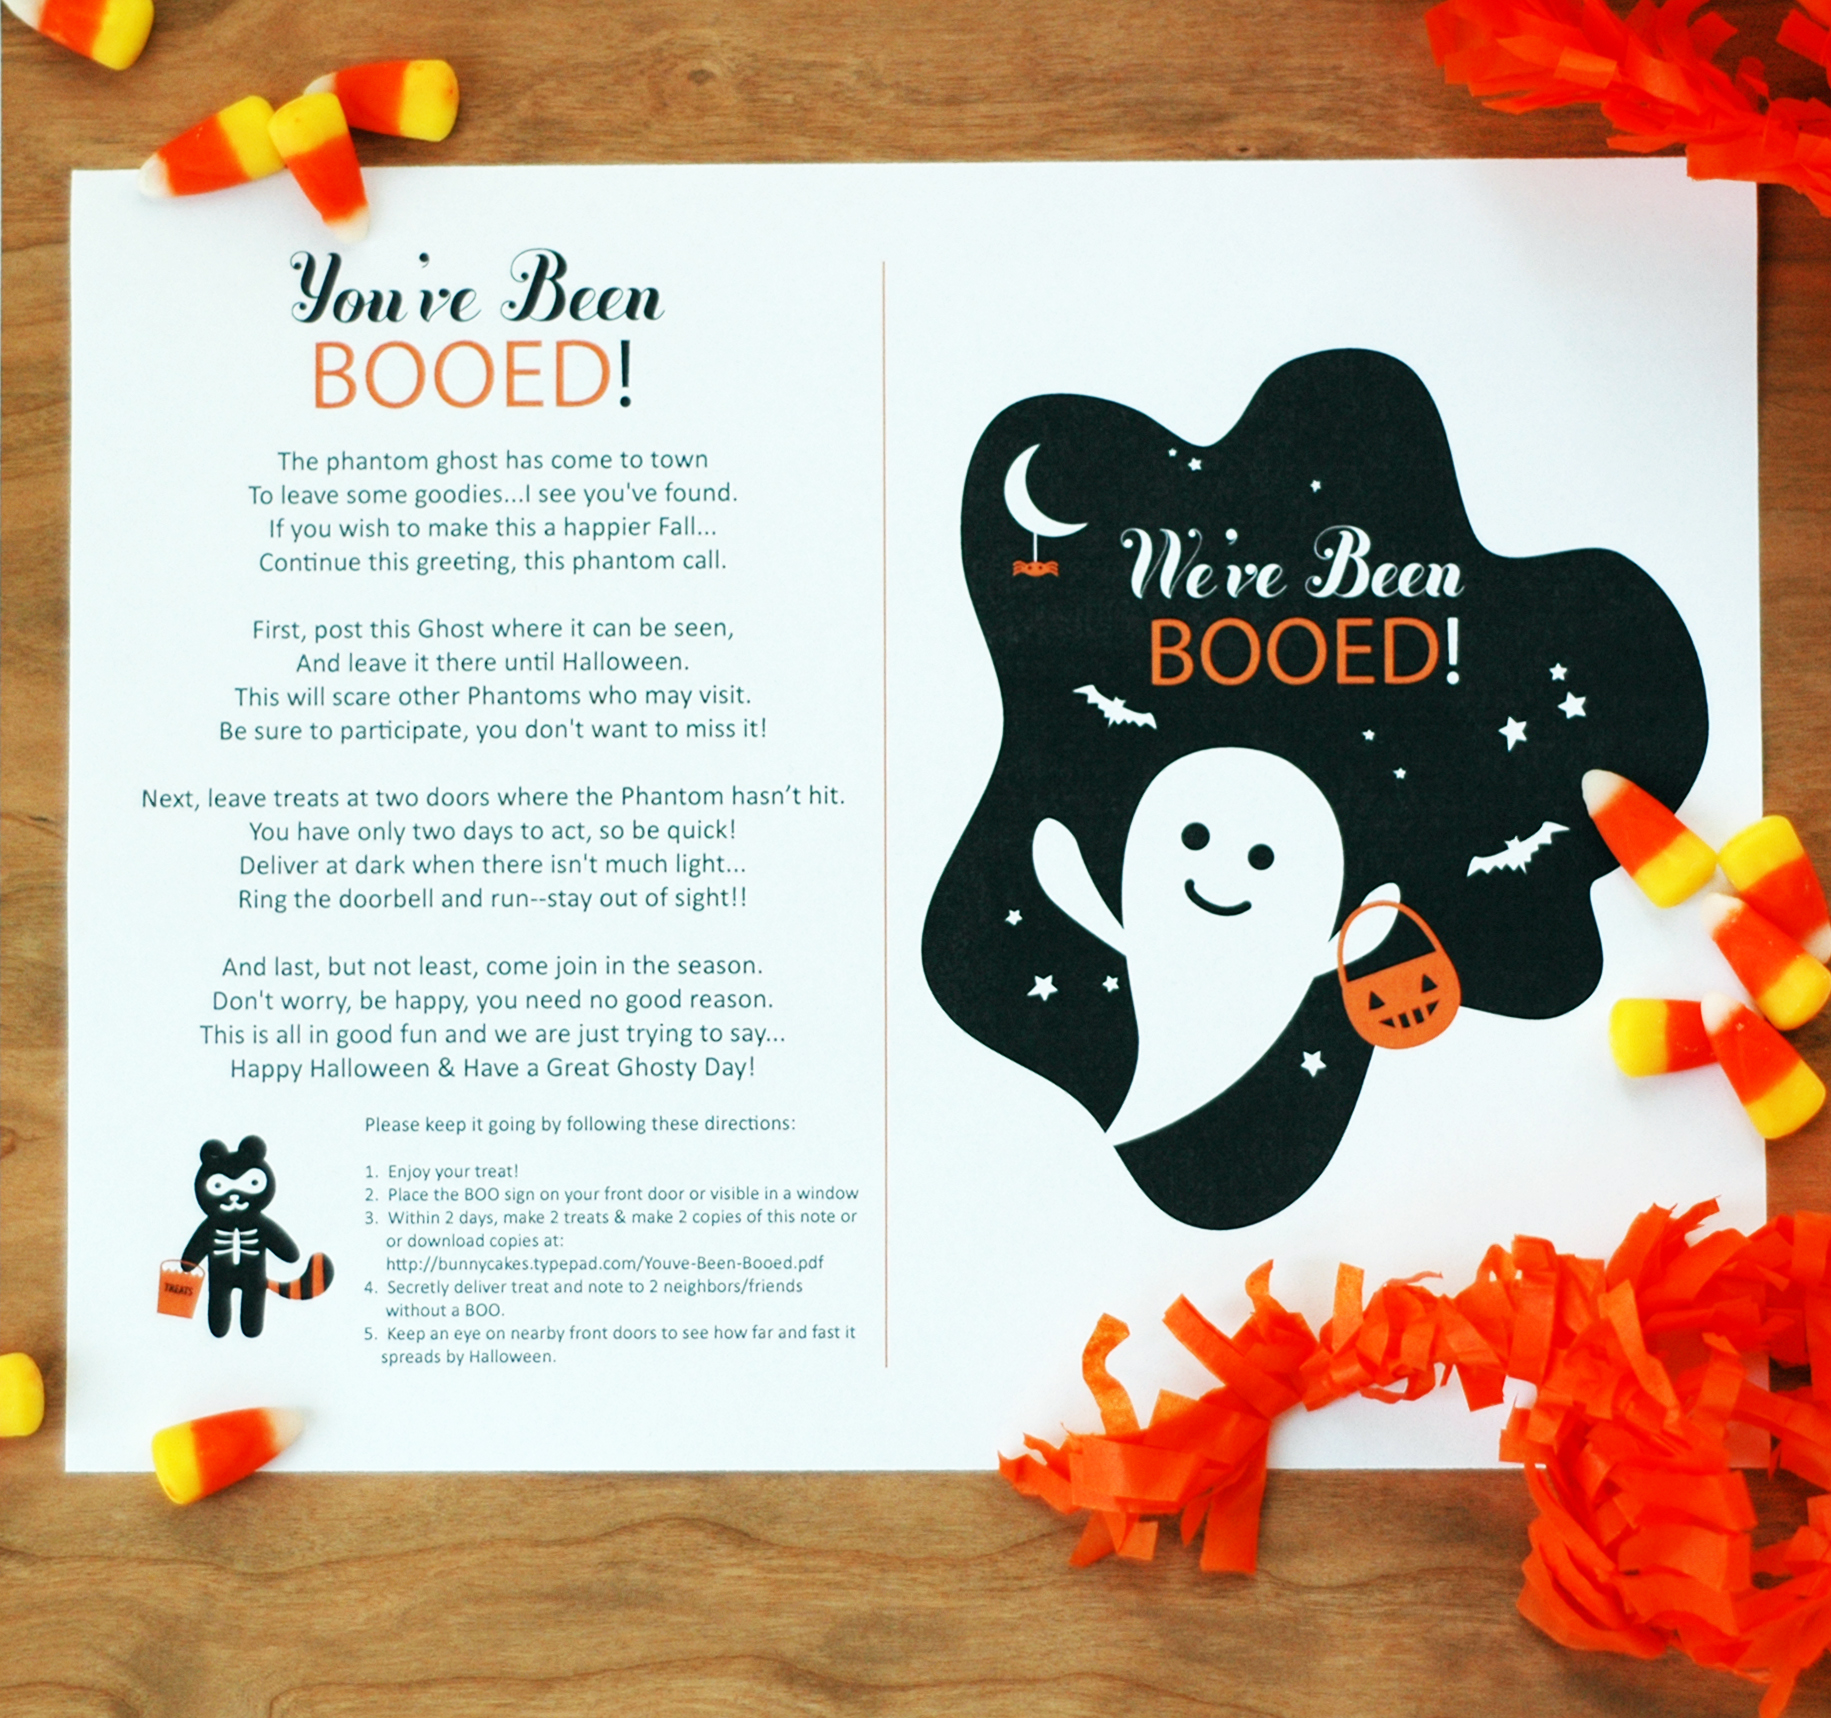 youve been booed printable bunnycakes - Cute Halloween Poem